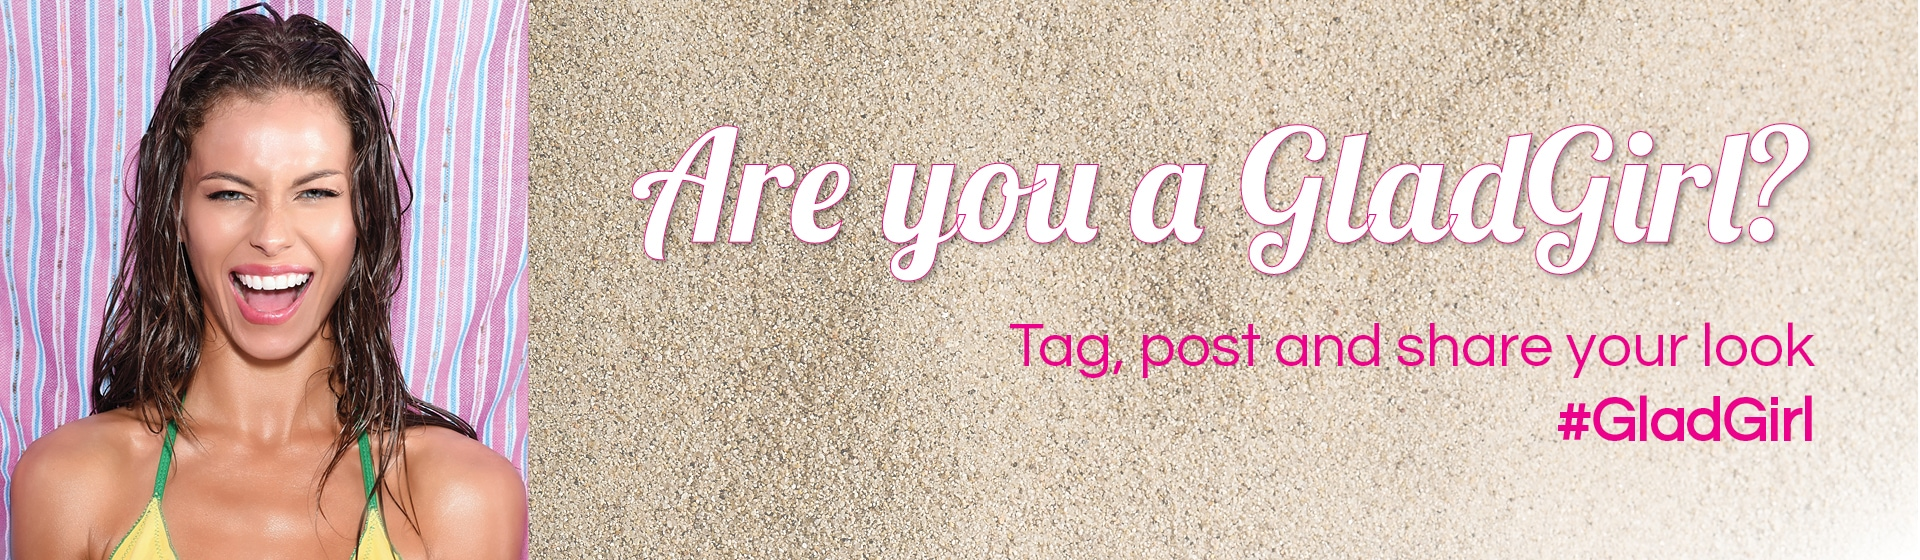 Are You A GladGirl? Tag, post and share your look.